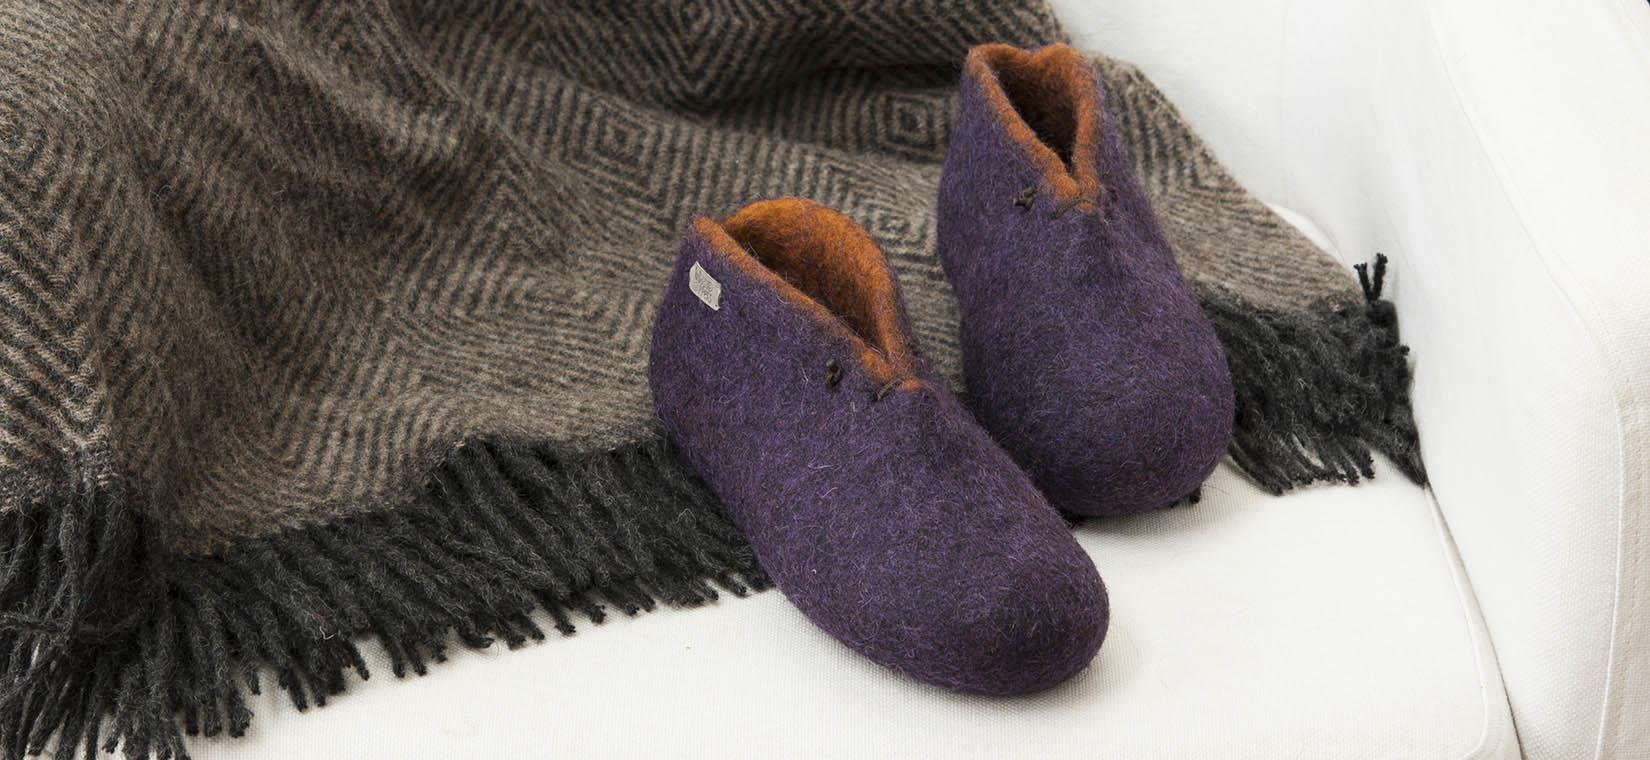 BOOTIES wooppers slippers amethyst with rusty orange